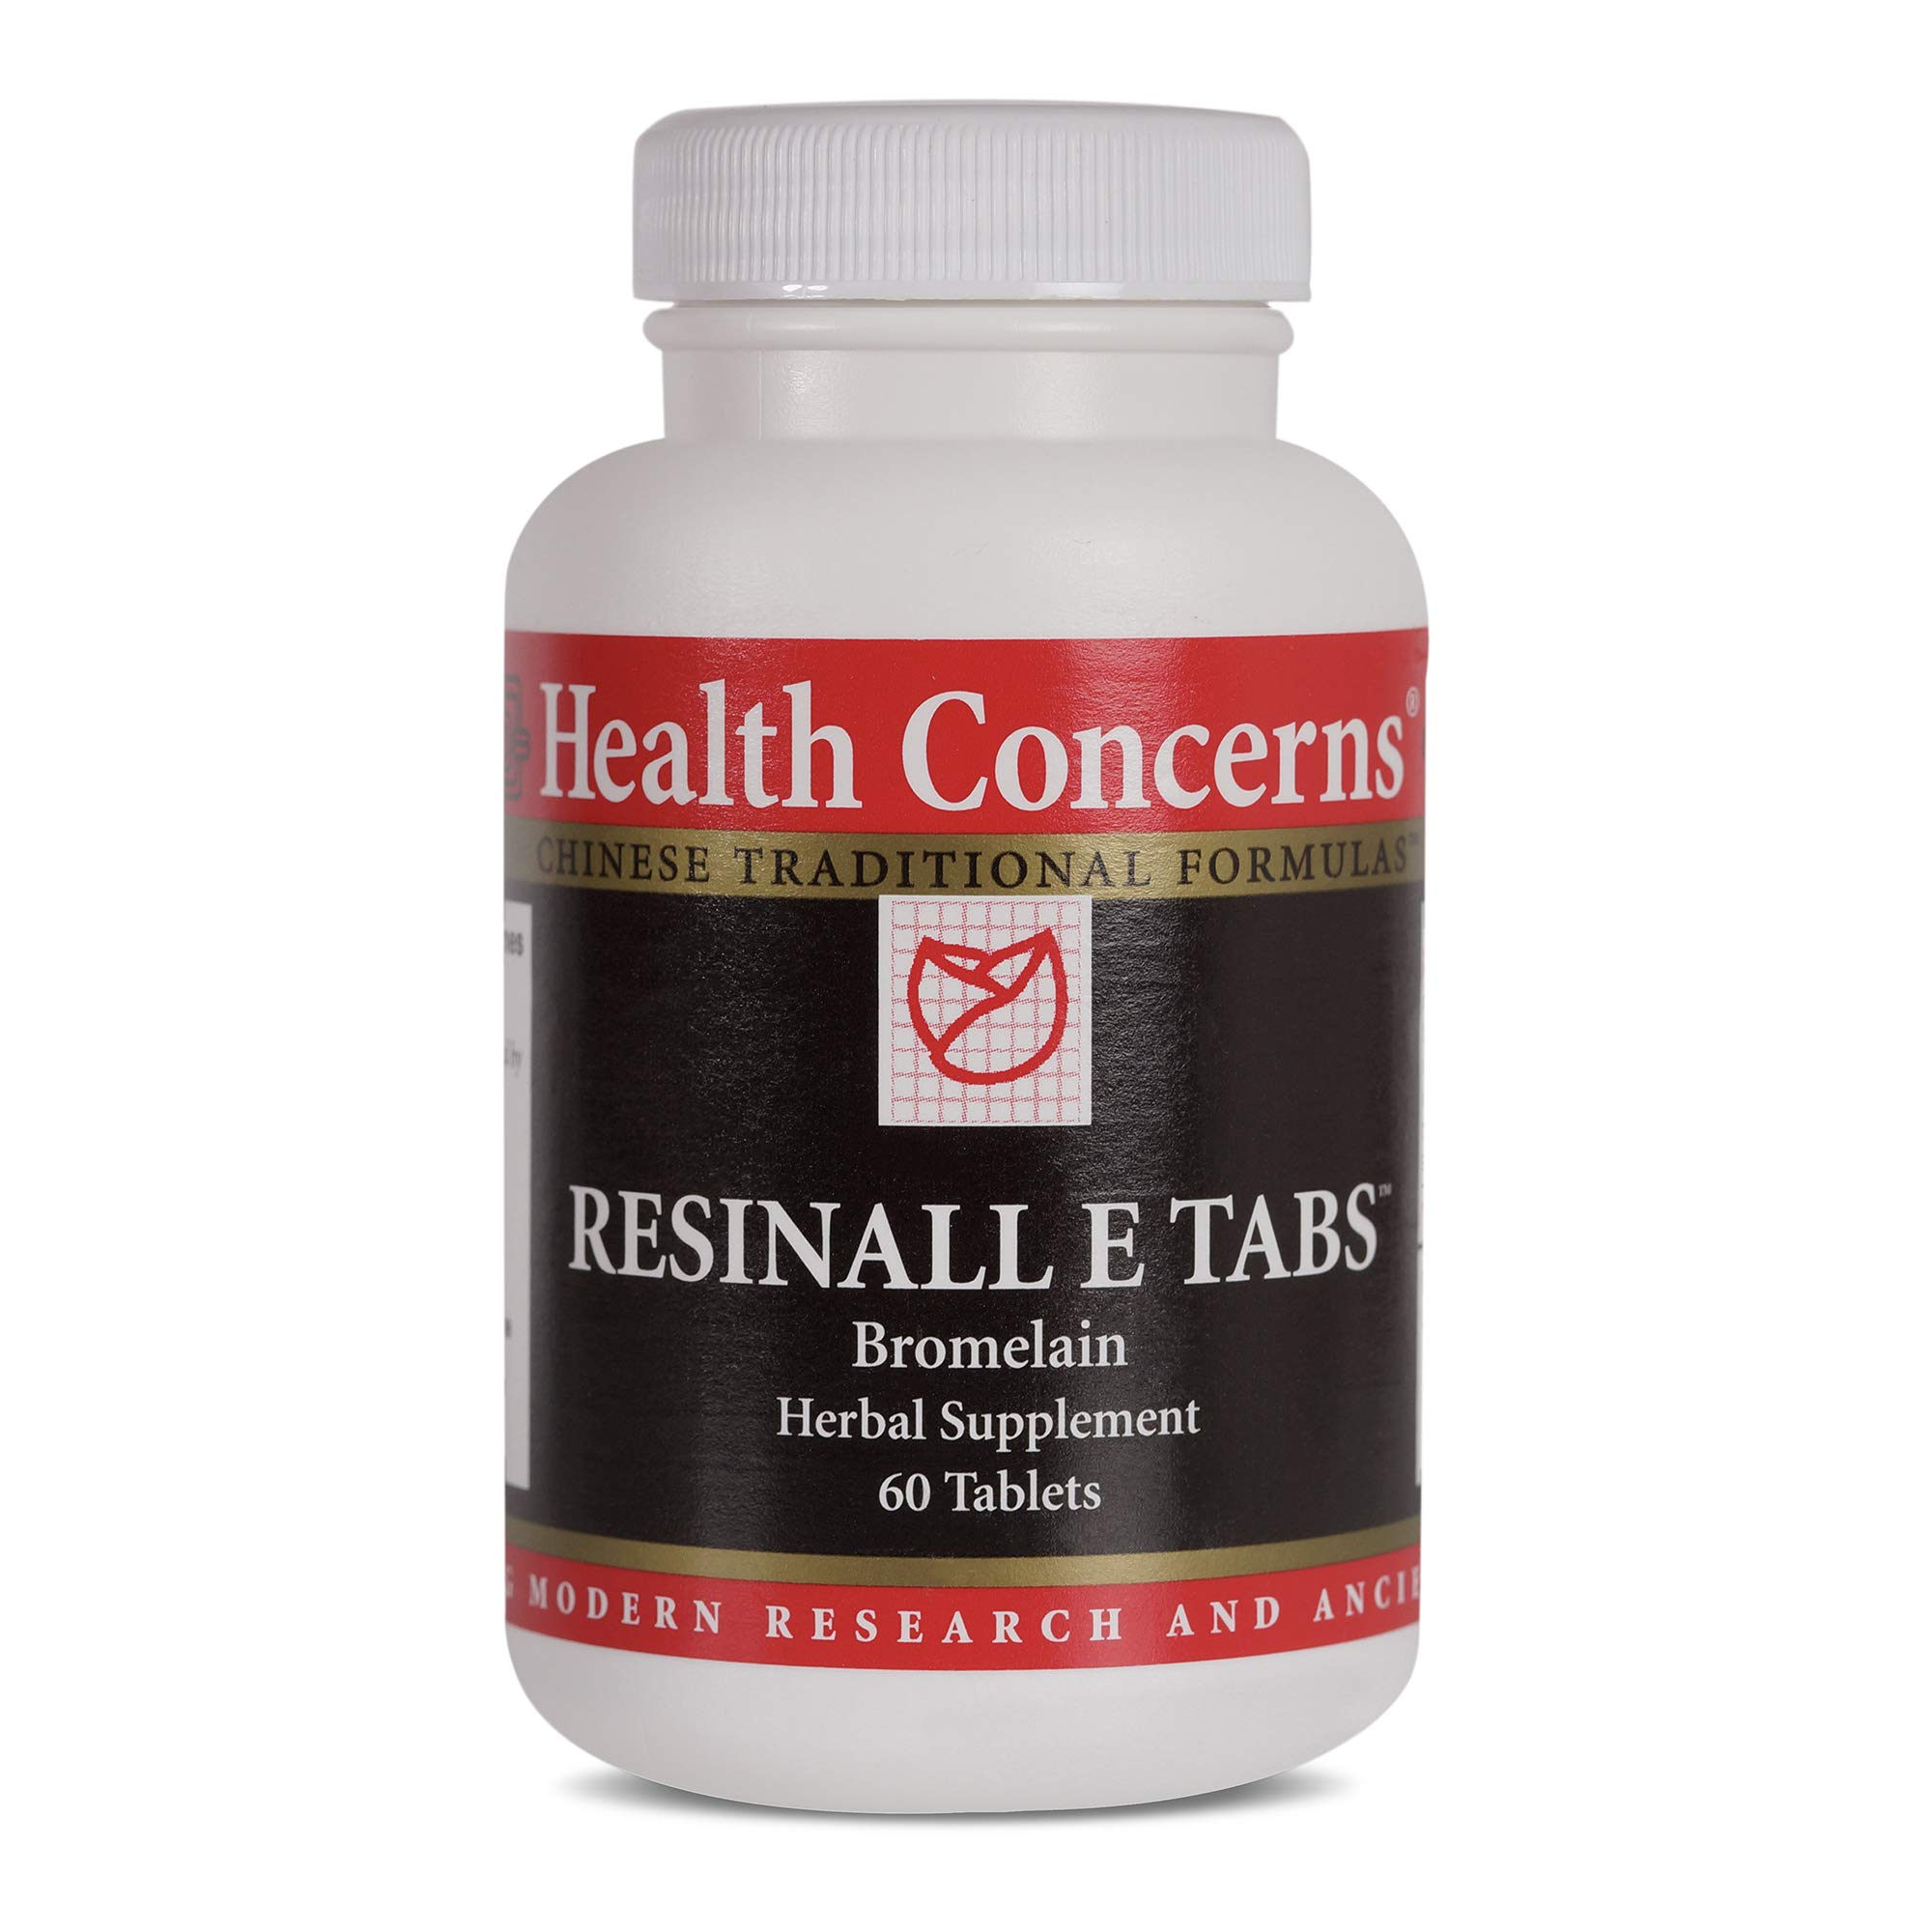 Health Concerns - Resinall E Tabs - Bromelain Chinese Herbal Supplement - Pain and Swelling Relief - with Bromelain - 60 Count